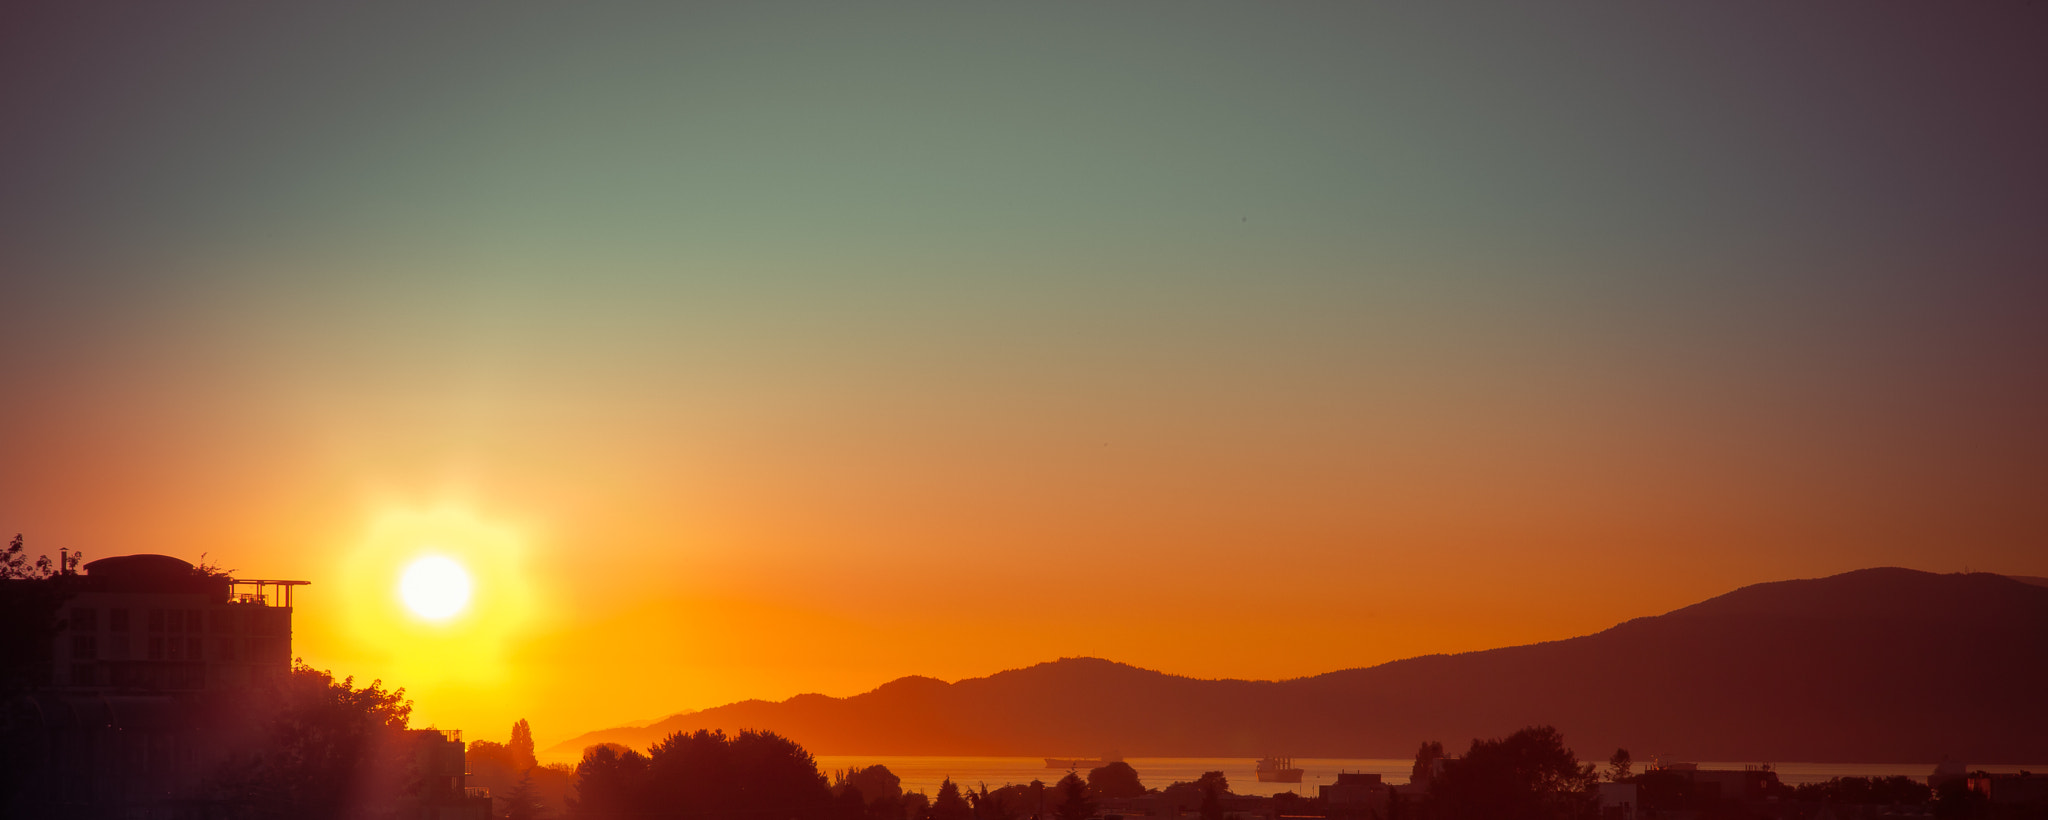 Photograph Vancouver Sunset by Bryan Hlagi on 500px